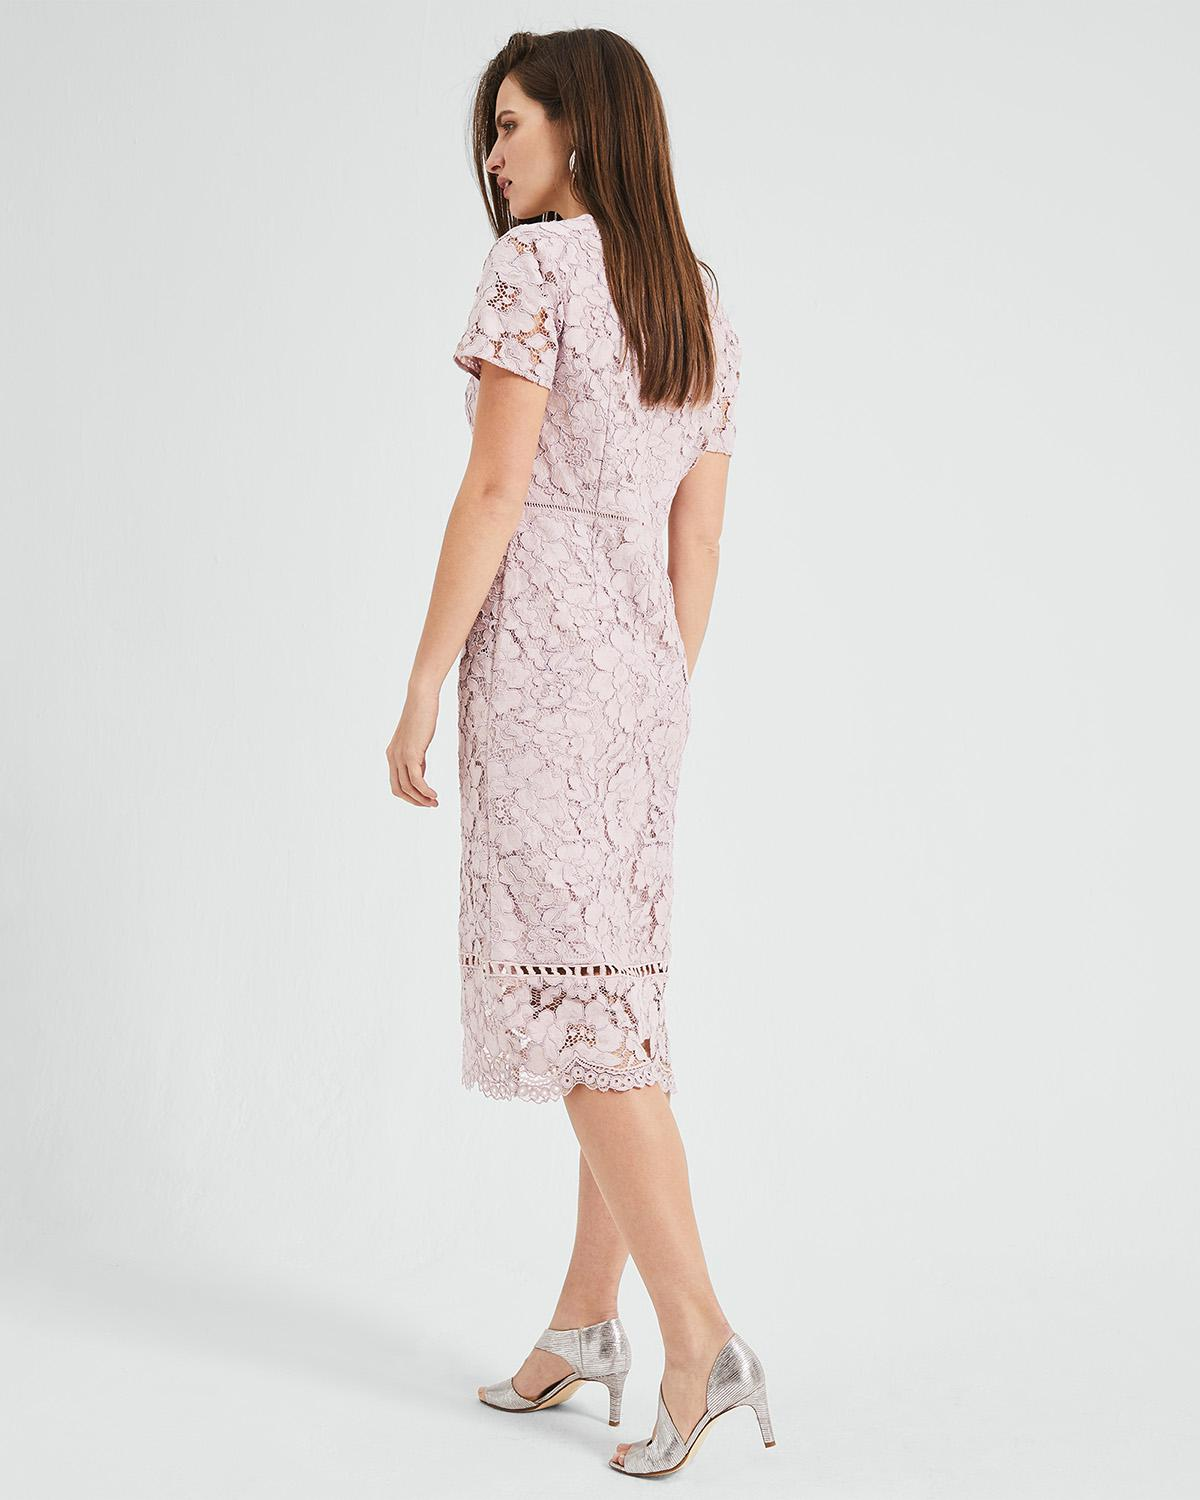 876e148a34 Lyst - Phase Eight Trinity Corded Lace Dress in Pink